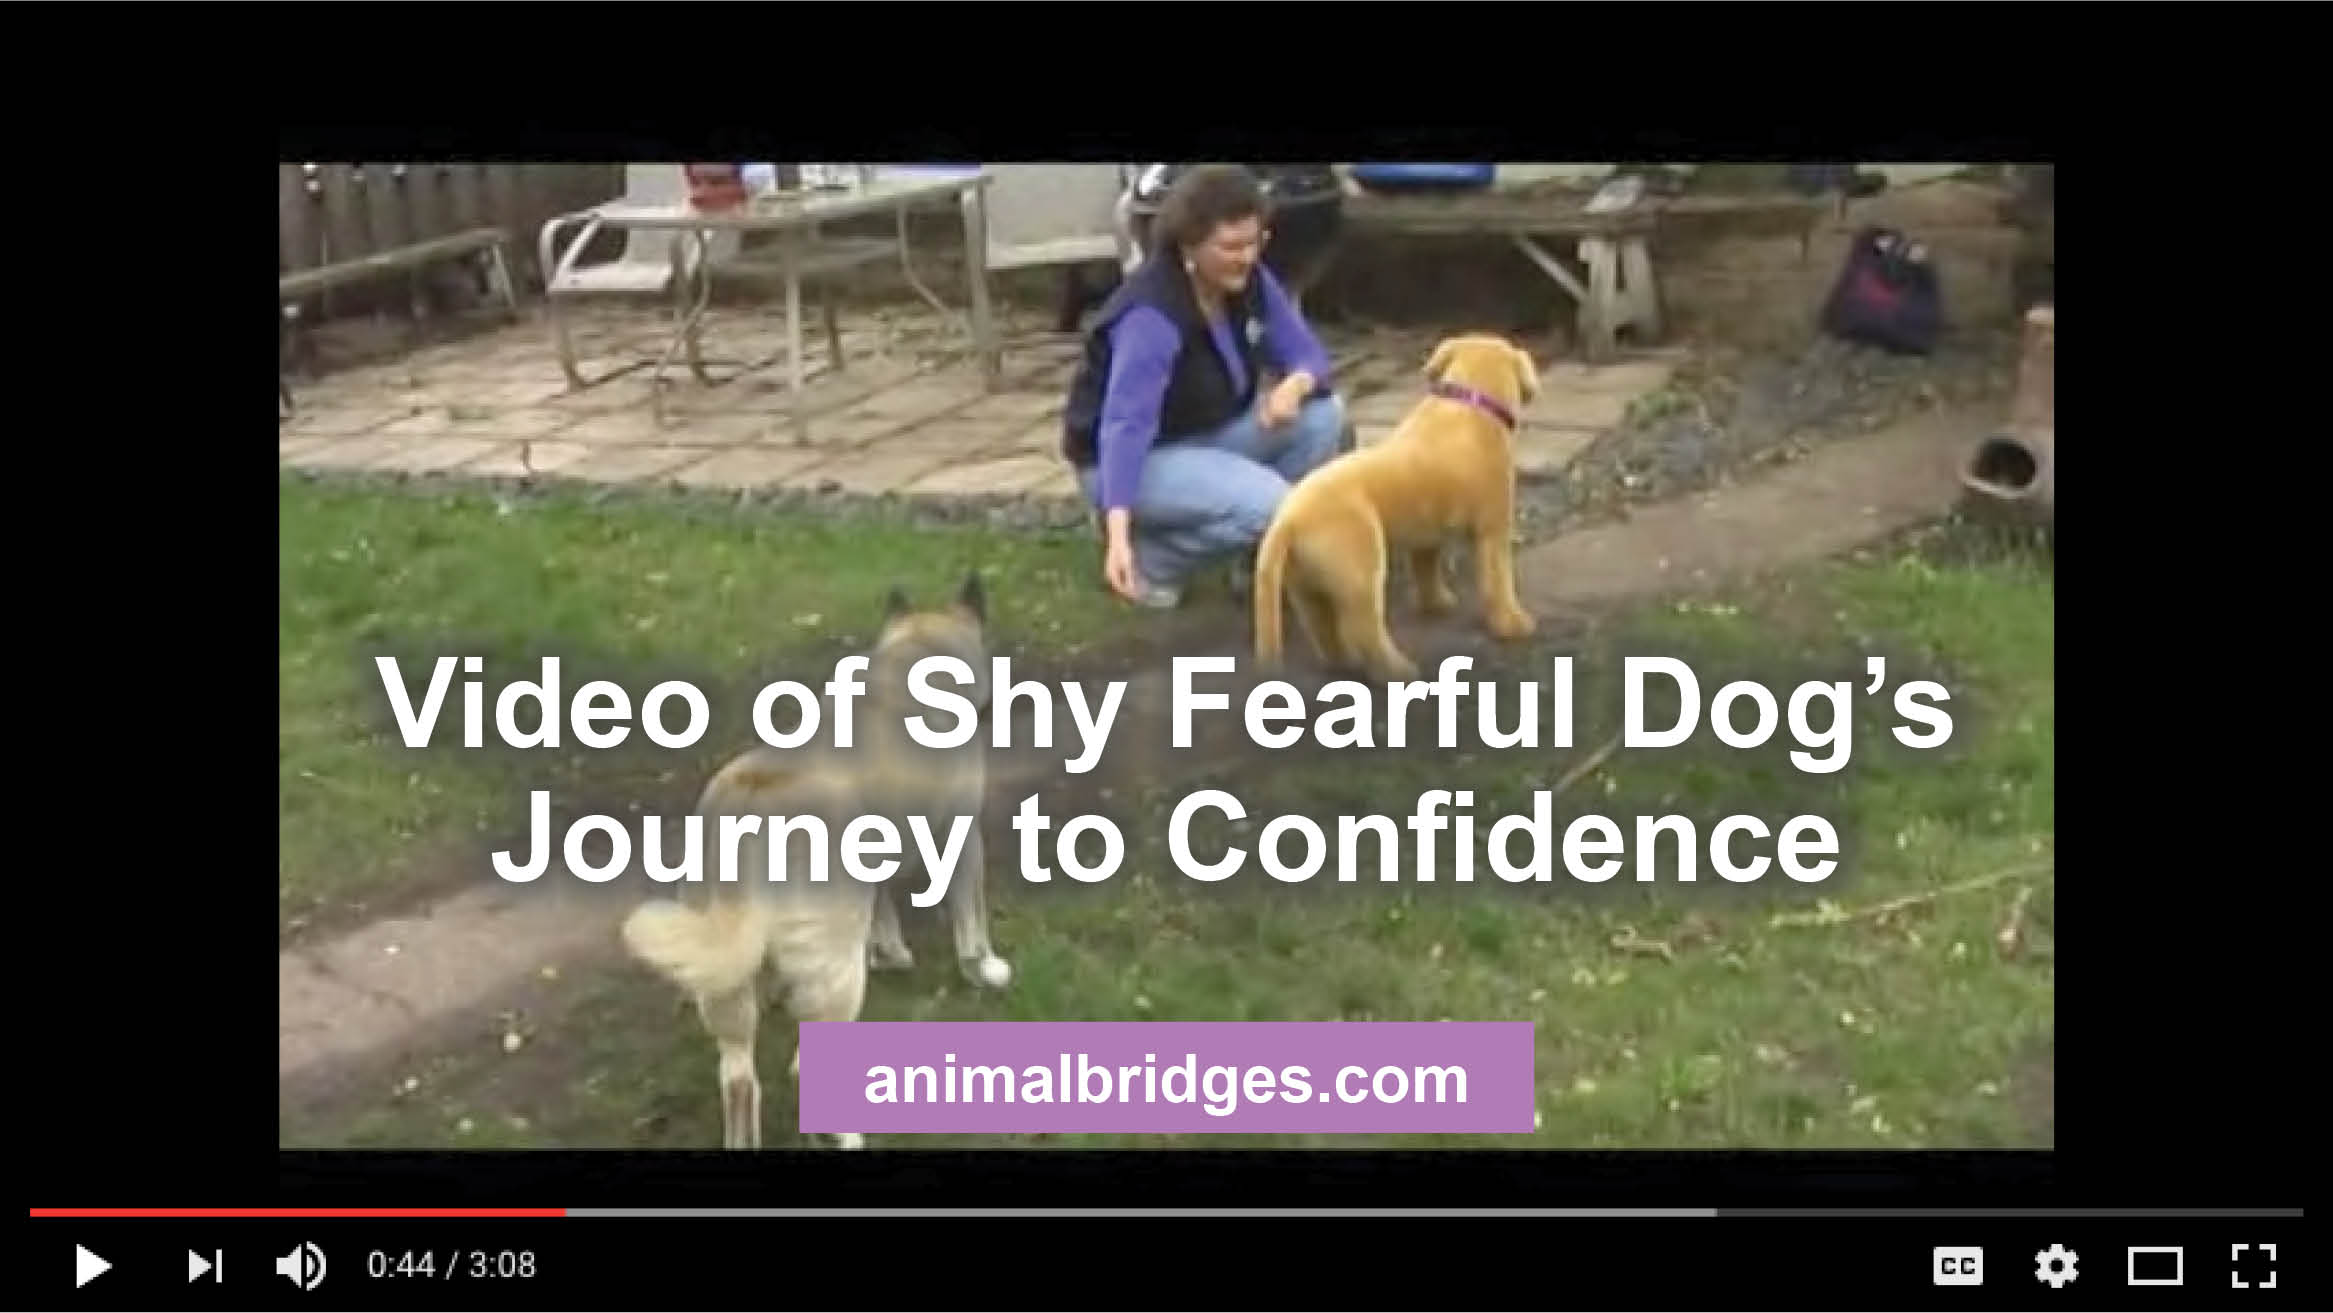 Video of Shy Fearful Dog's Journey to Confidence